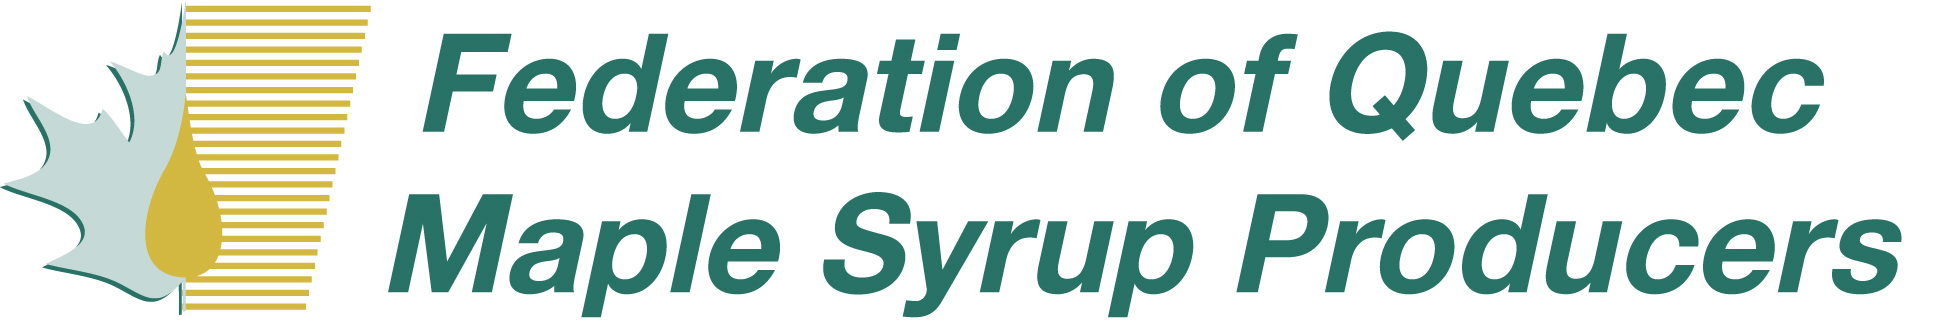 Federation of Quebec Maple Syrup Producers